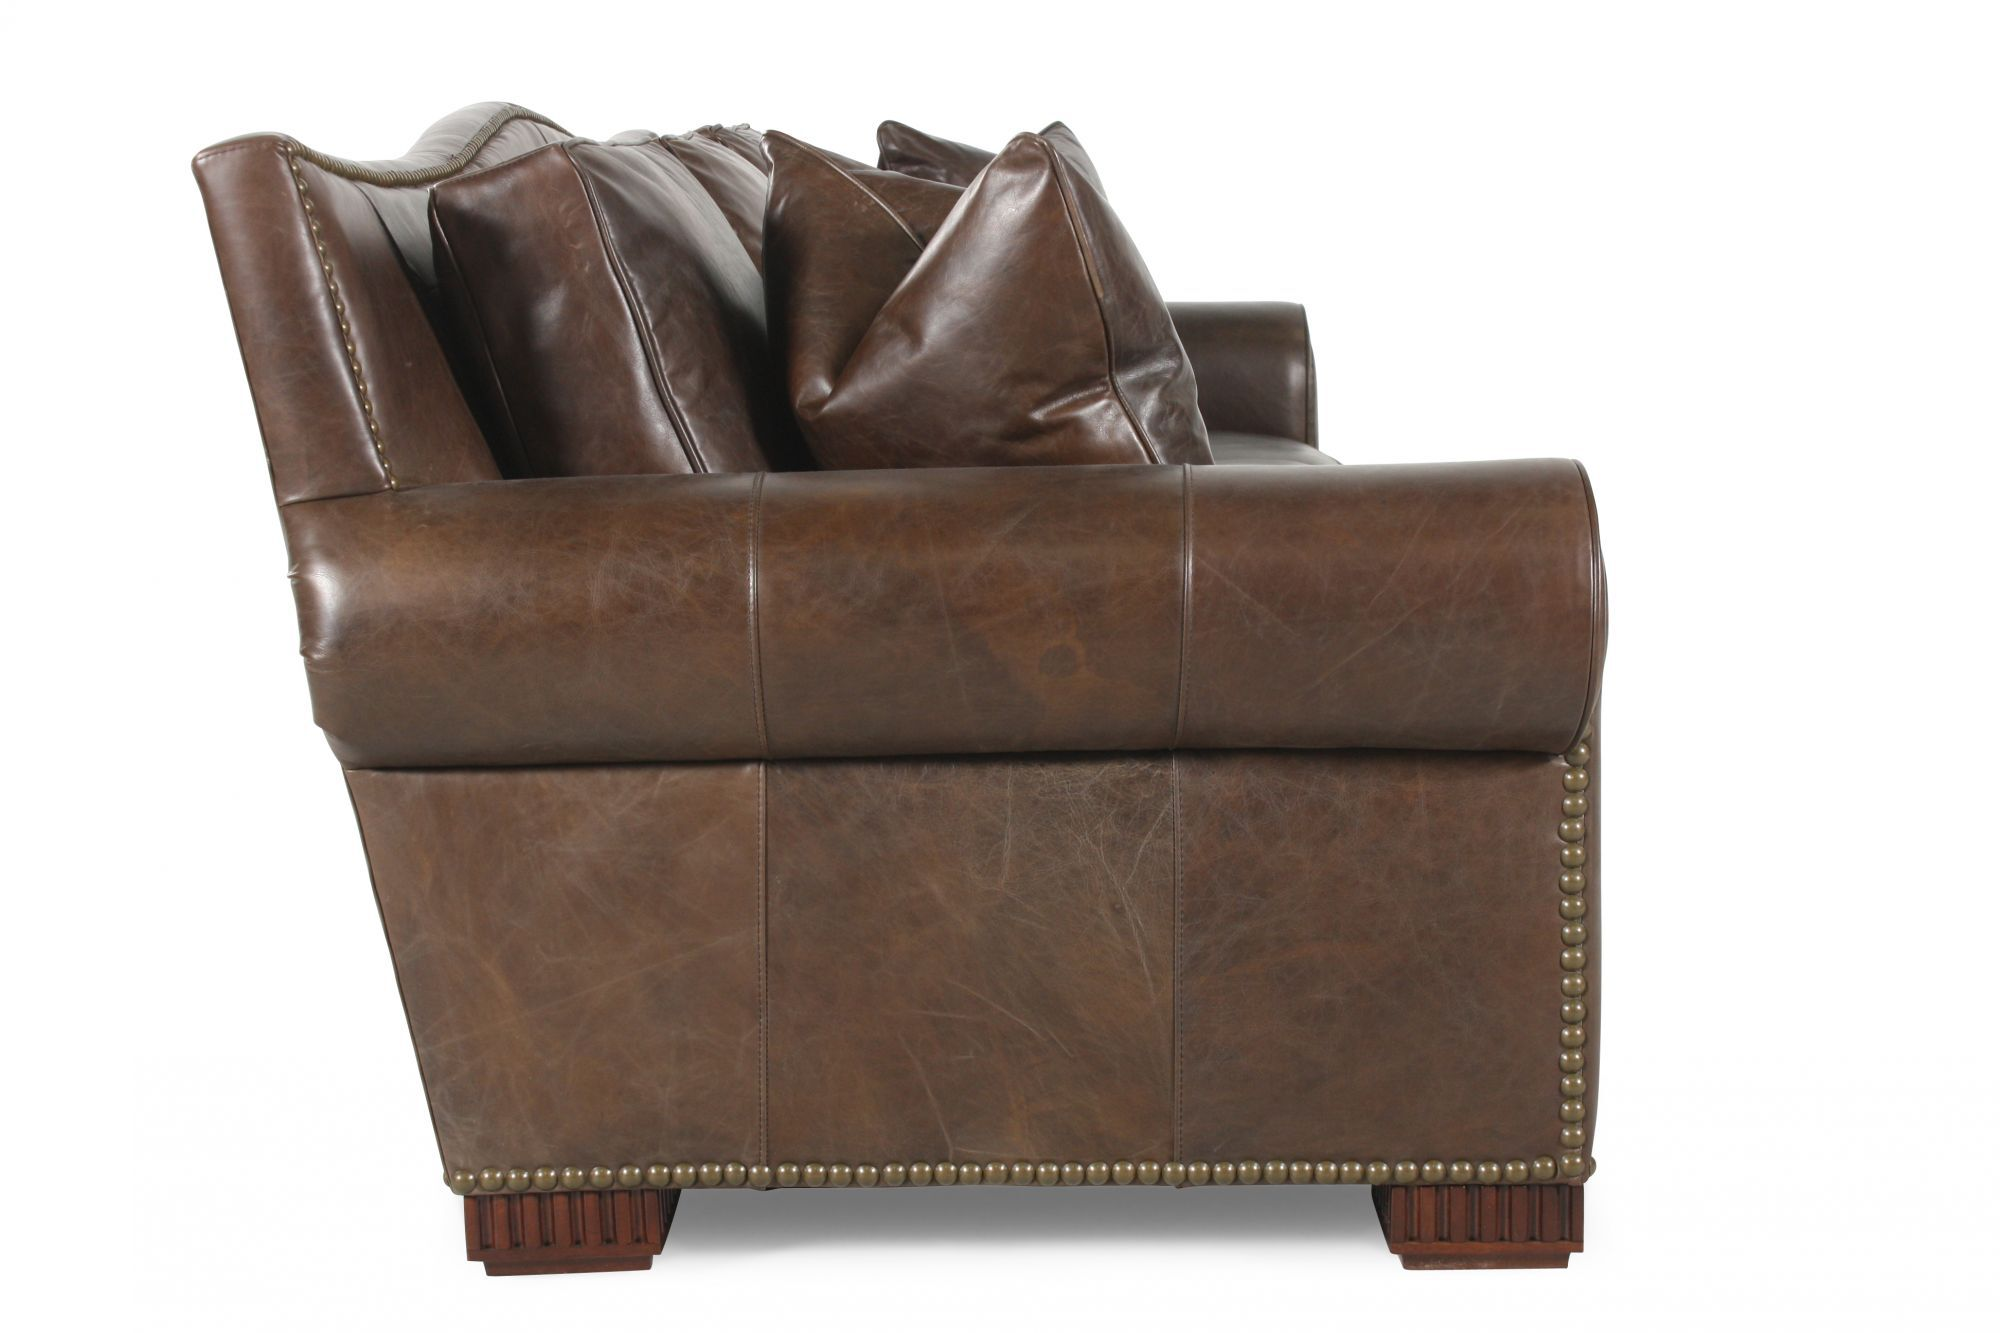 henredon sofa leather sofas dfs mathis brothers furniture